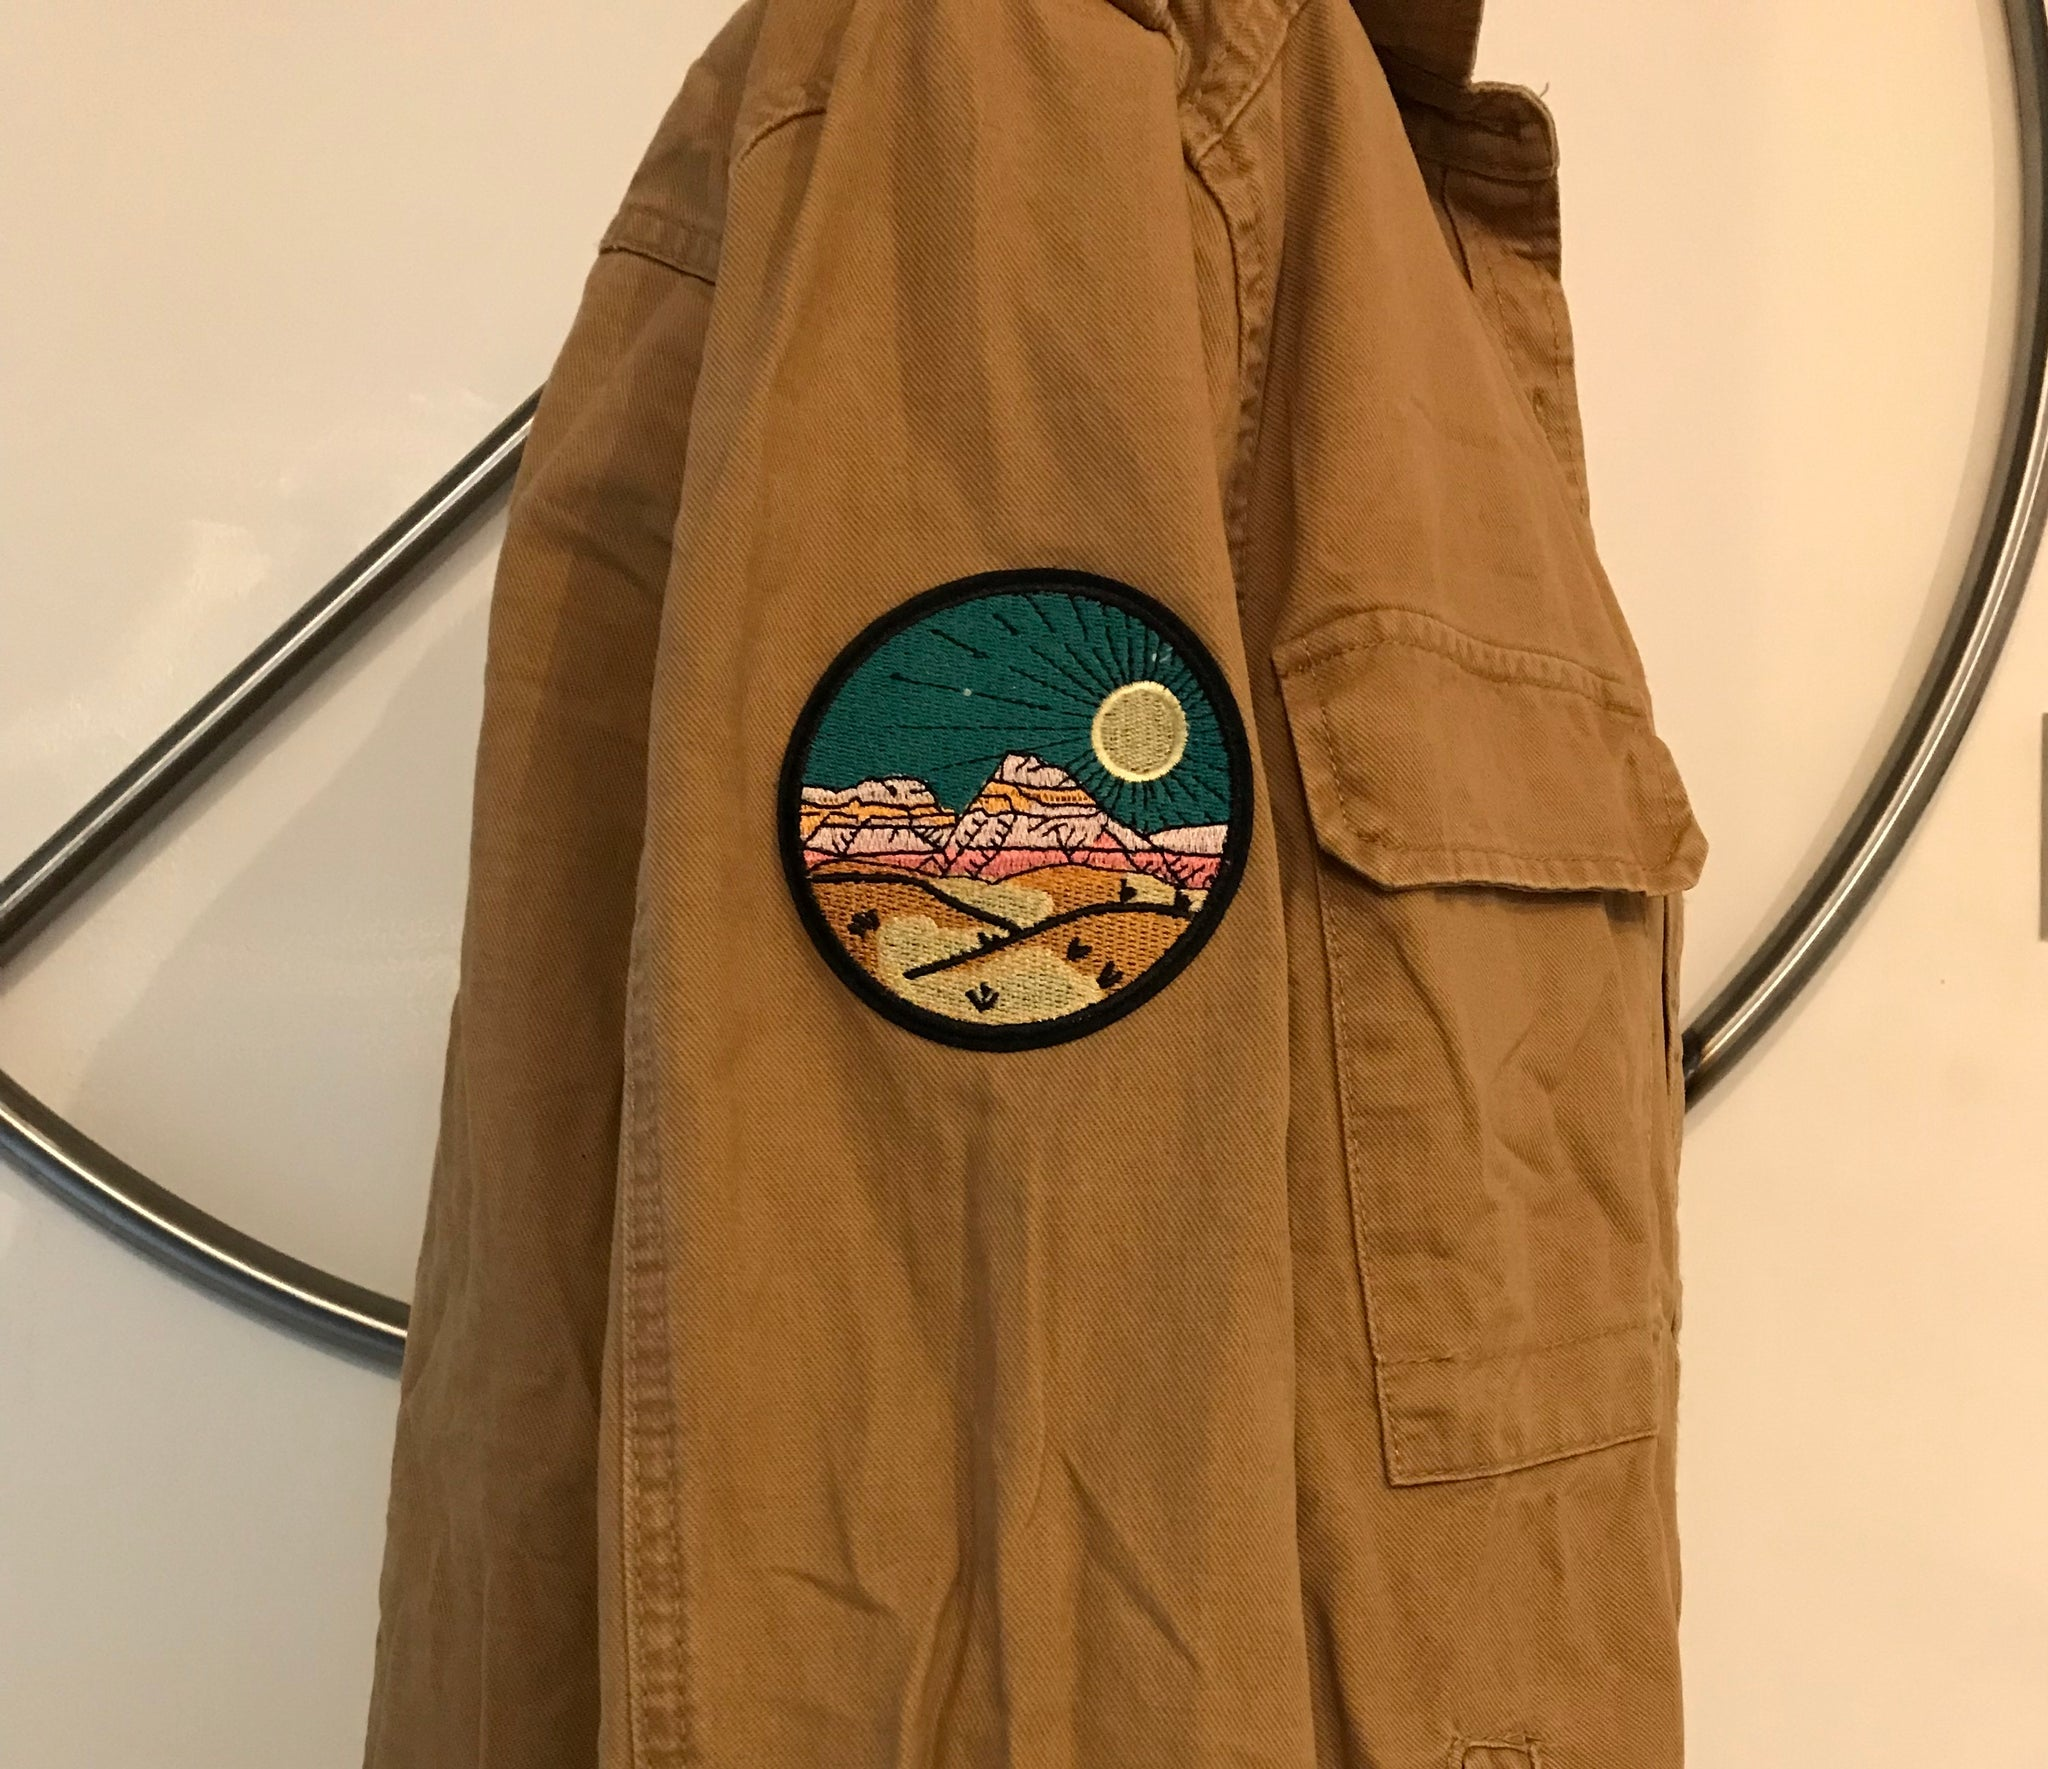 'Going to California'  Shirt Jacket